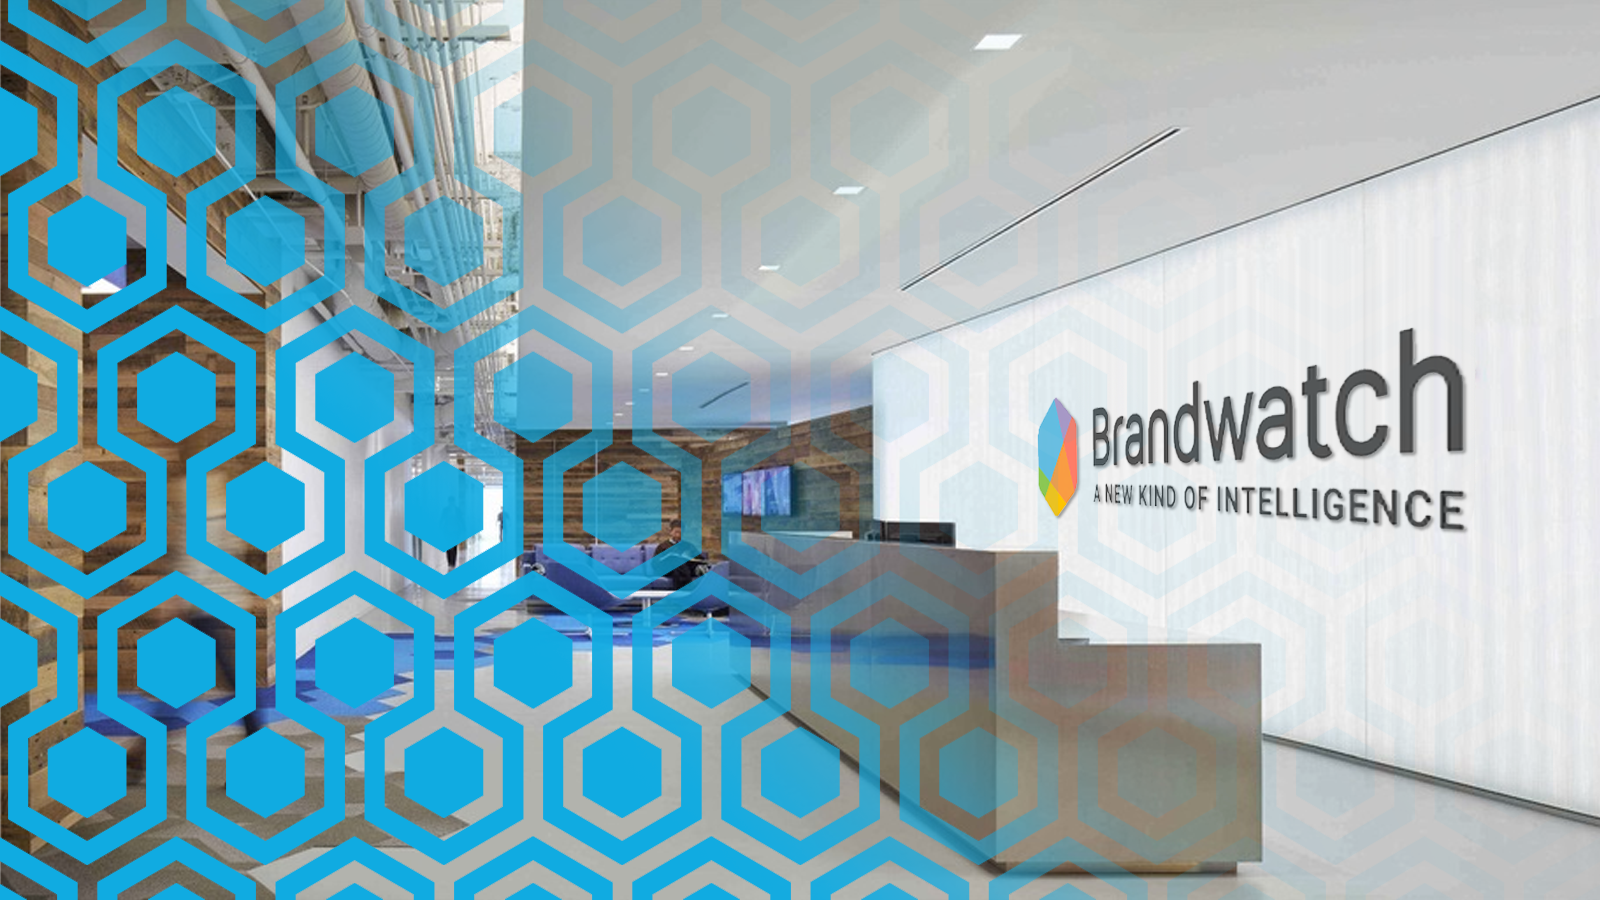 A history of Brandwatch, the company acquired by Cision